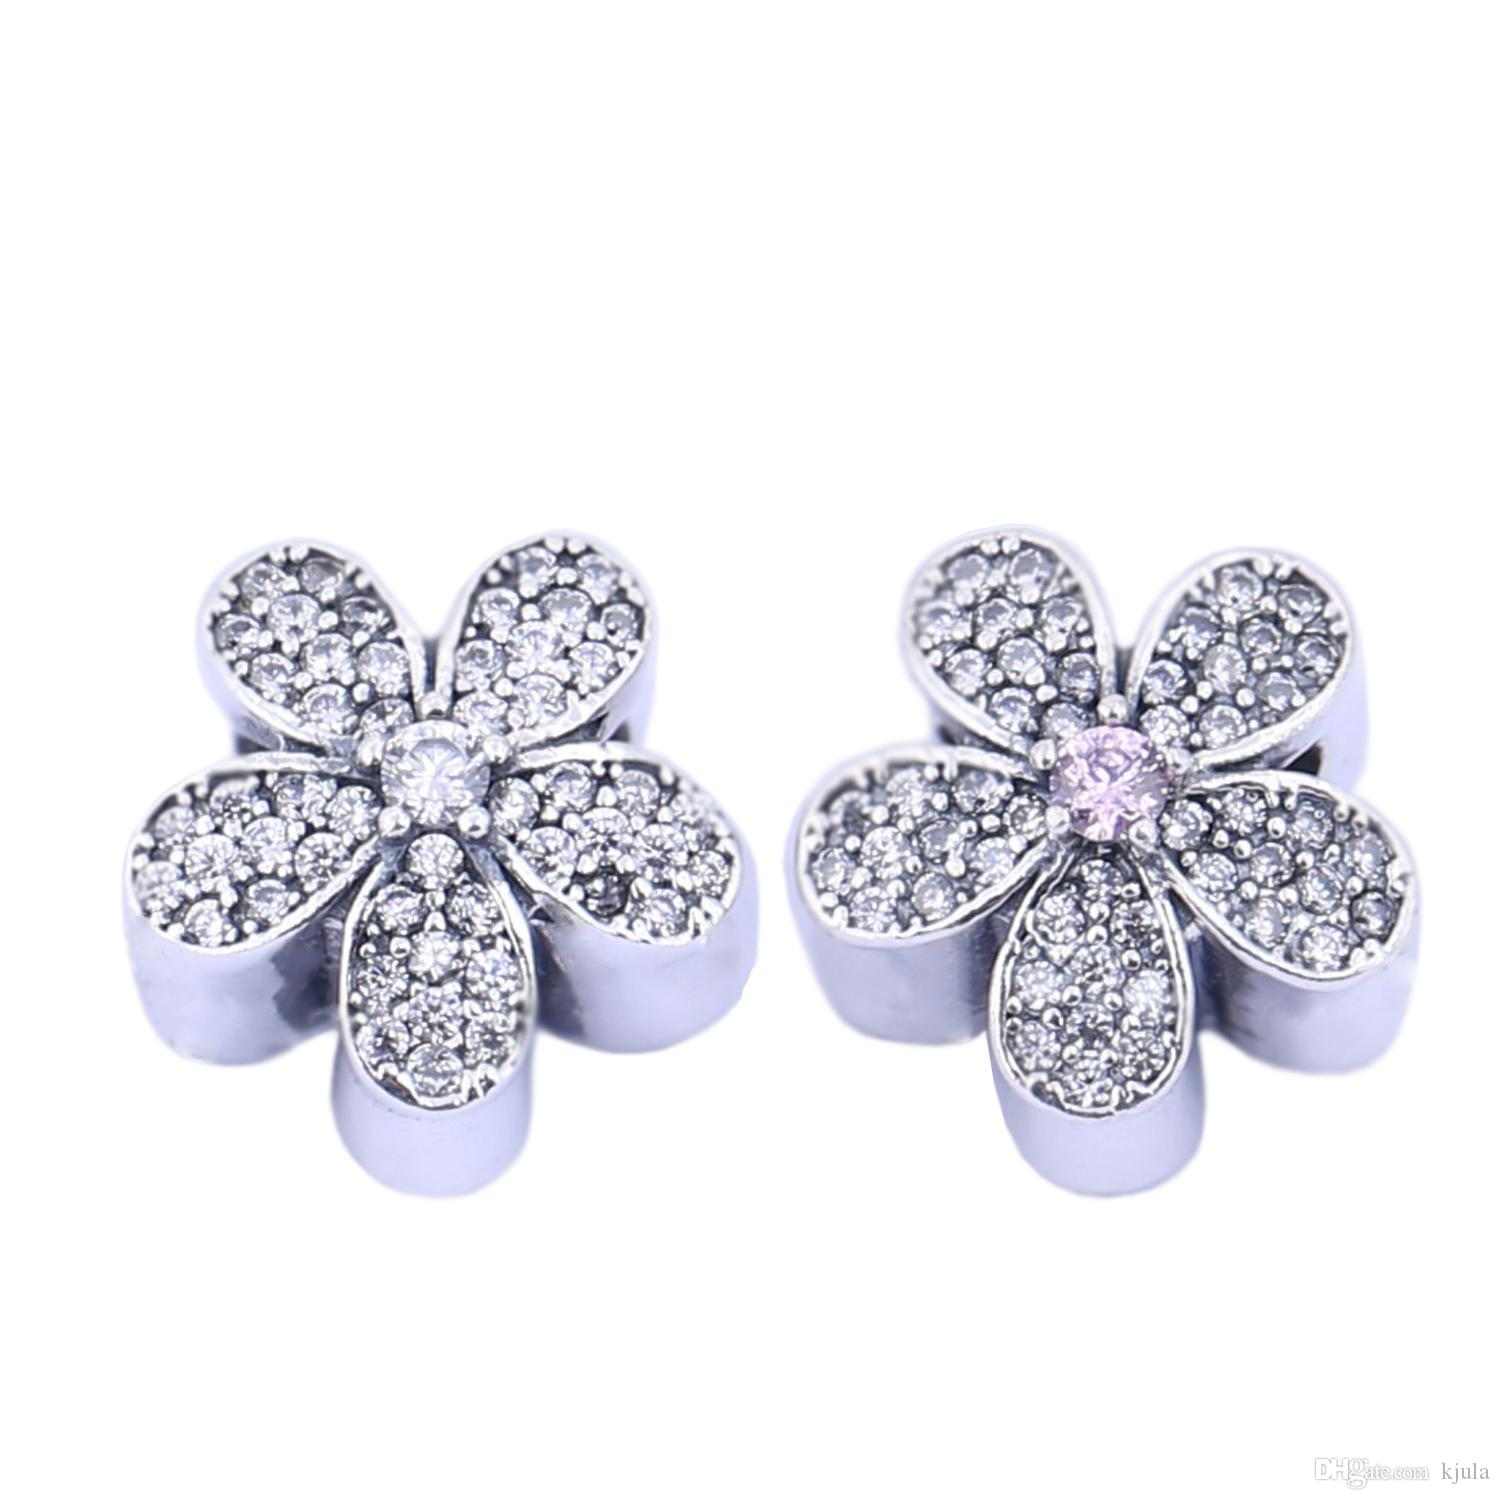 e0dbfa366 ... Dazzling Daisy Charm Made of Real 925 Sterling Silver With  Brilliant-cut Cubic Zirconia Stones Pandora Hoop Earrings ...